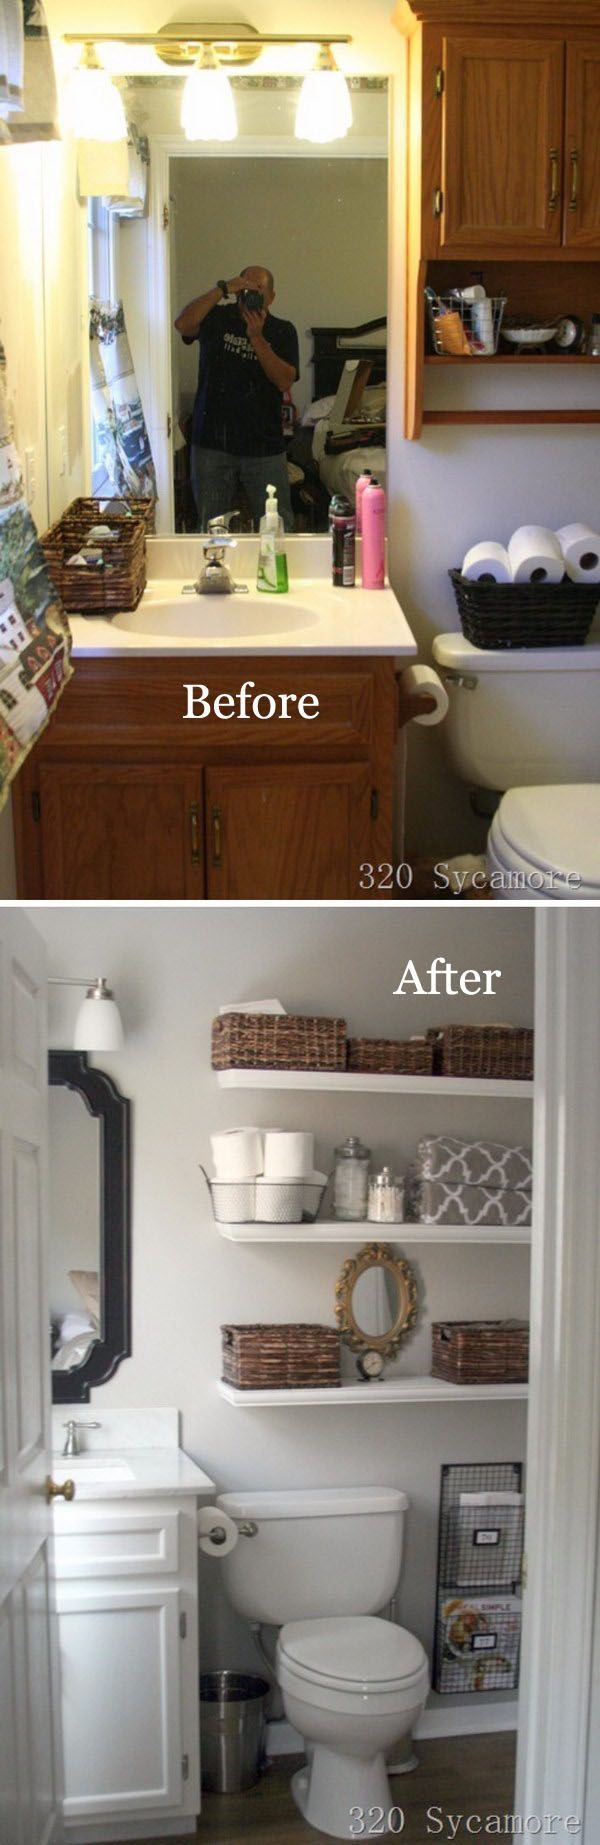 Photo Gallery Website Before and After Awesome Bathroom Makeovers Small Basement BathroomSmall Master